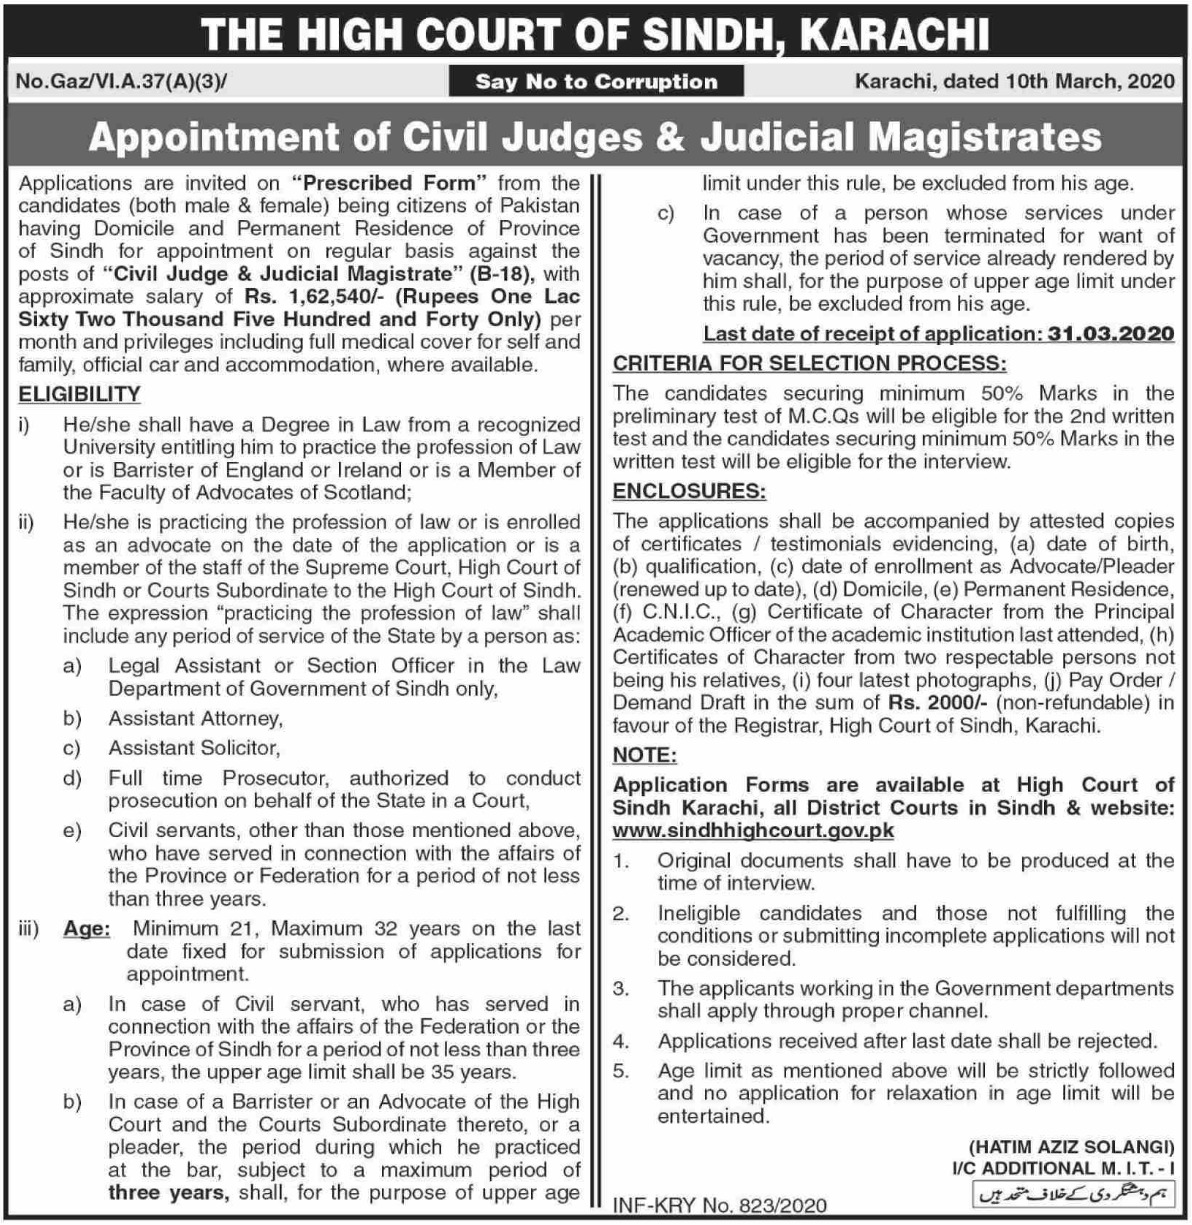 The High Court of Sindh Jobs 2020 Karachi